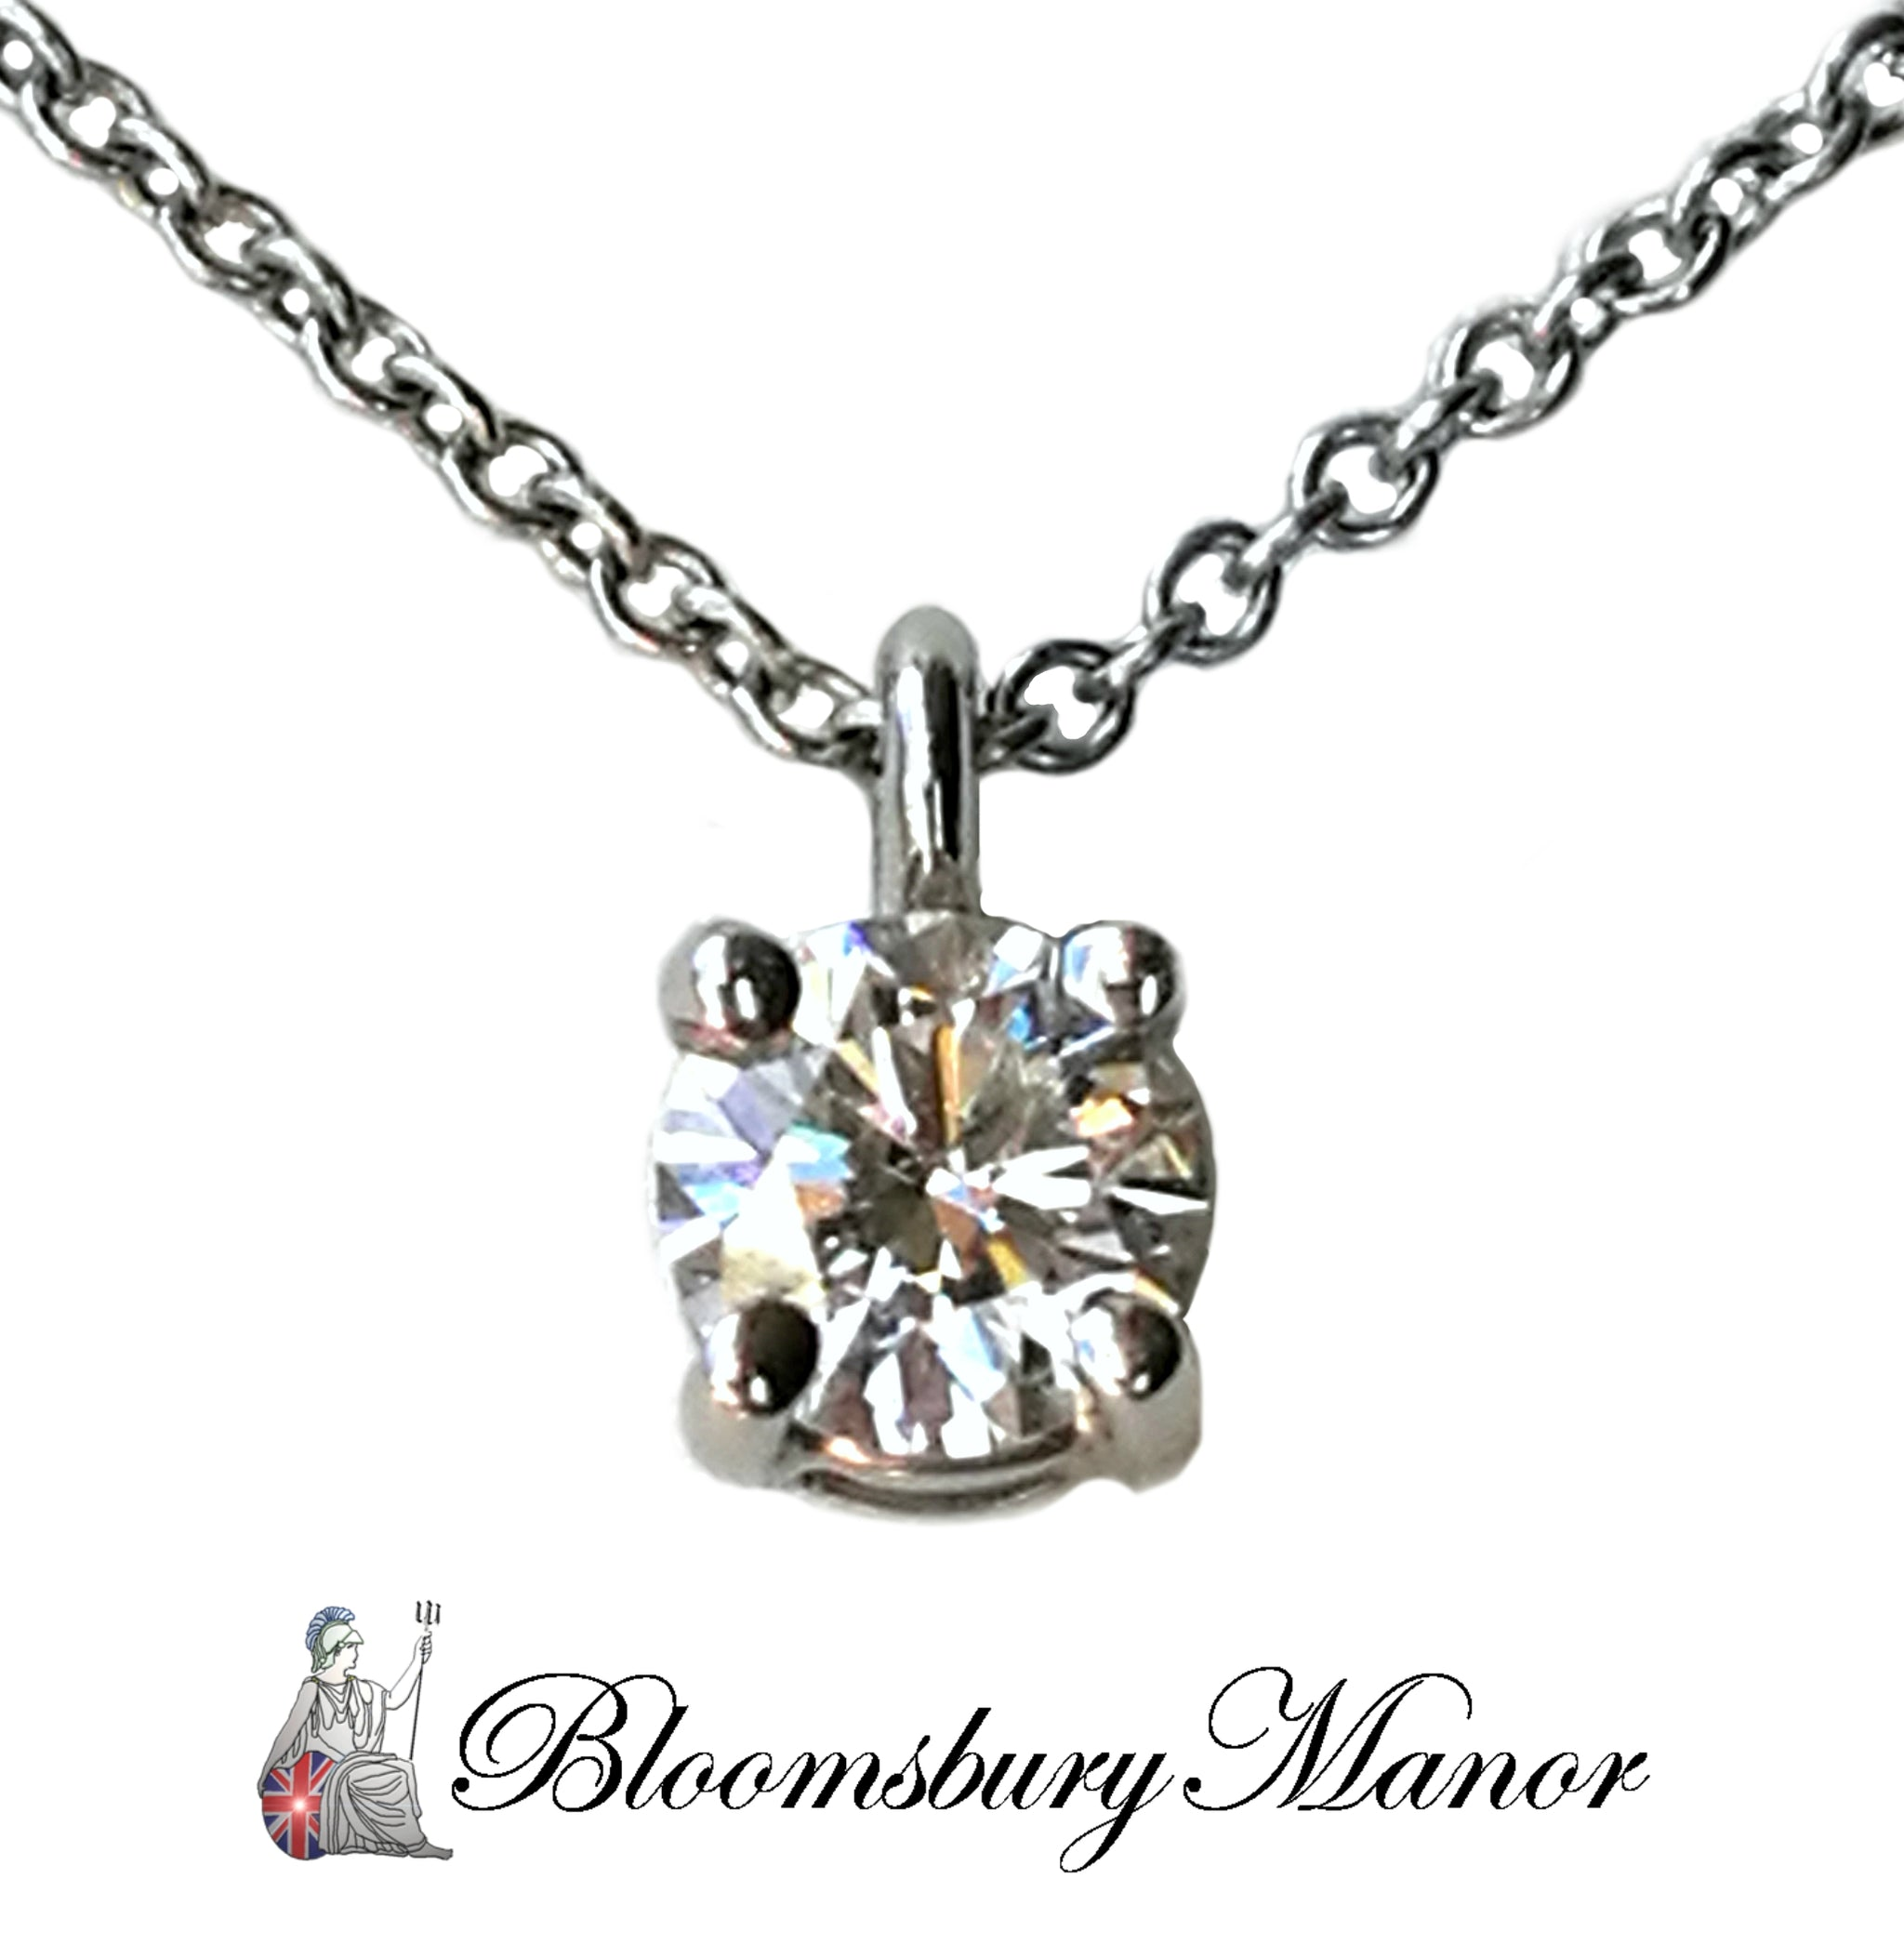 necklace jewery dk maarten store pendant diamond product and gems round stores sint online solitaire at best in